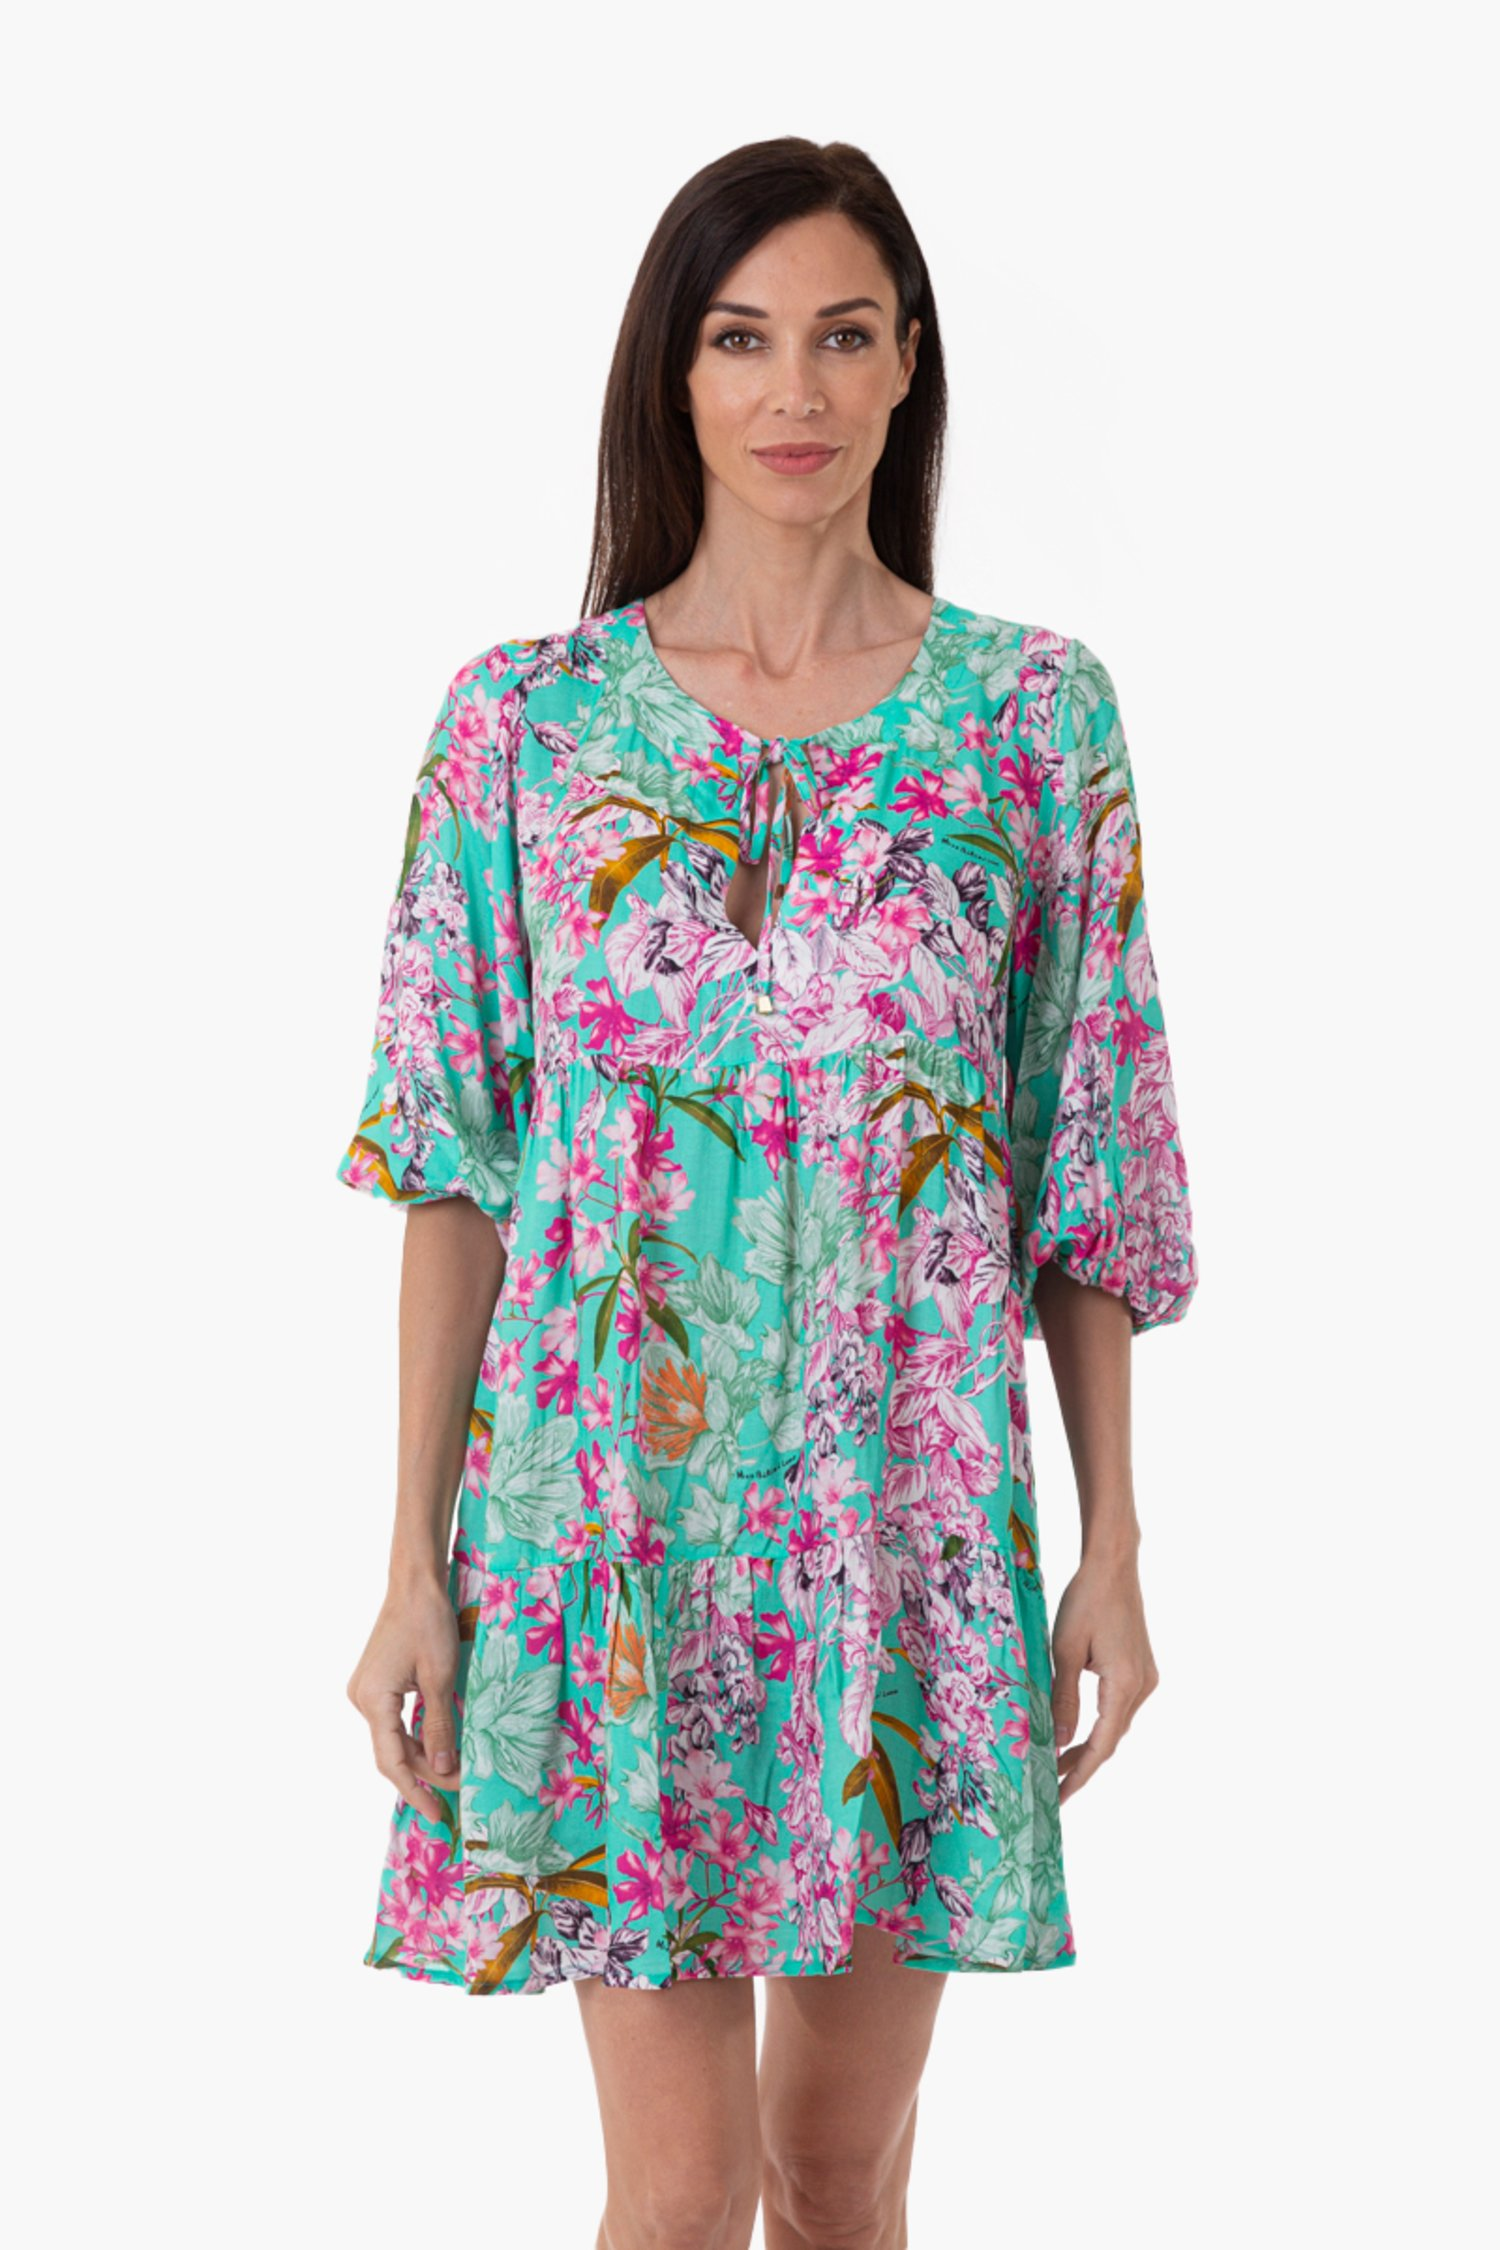 PRINTED VISCOSE CAFTAN WITH THREE QUARTER SLEEVES - Fiori Azzurro